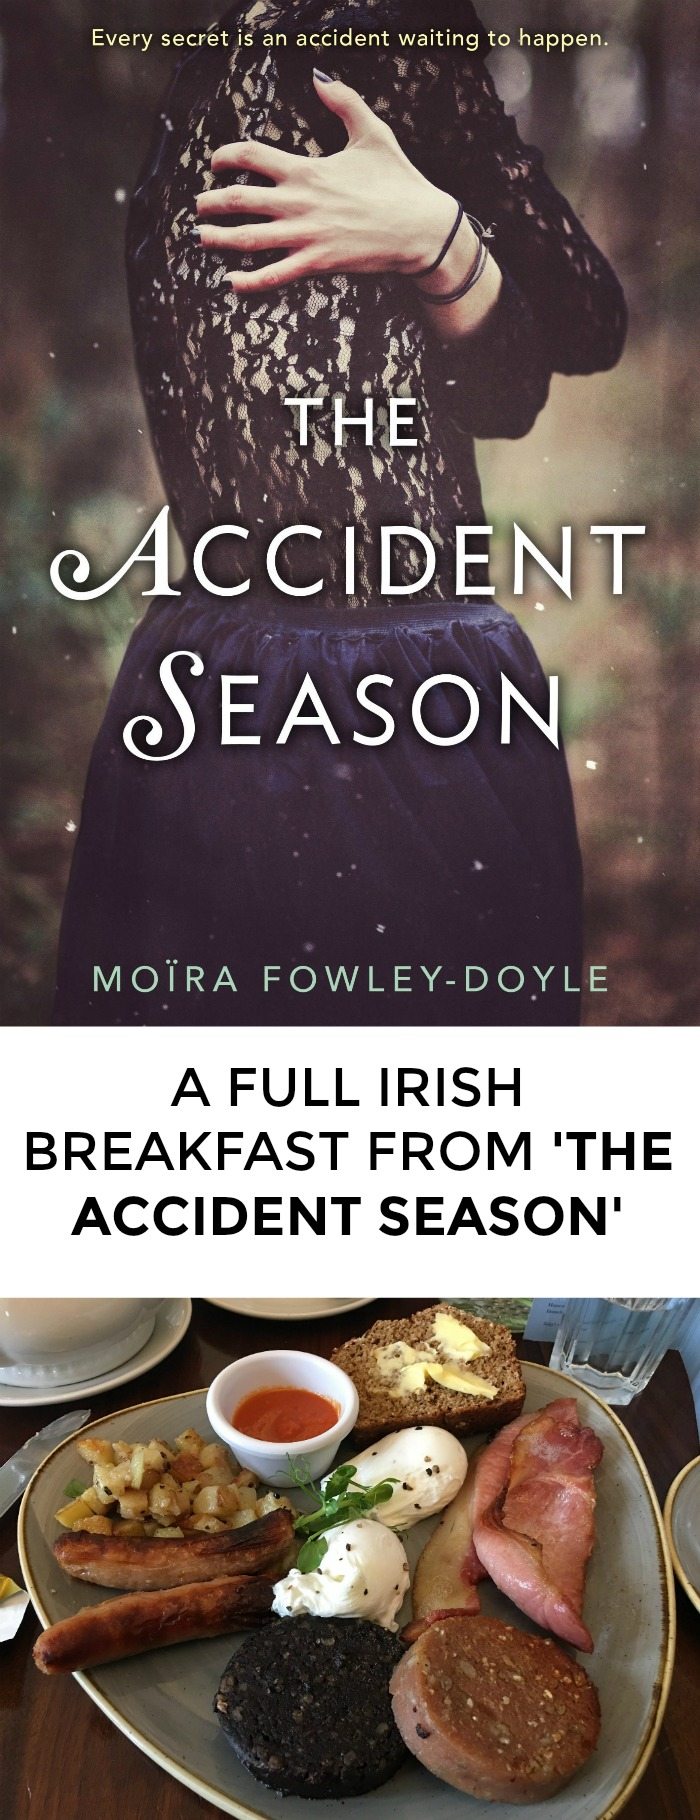 Looking for a recipe from The Accident Season to impress your book club? Click through for a great Full Irish Breakfast recipe!